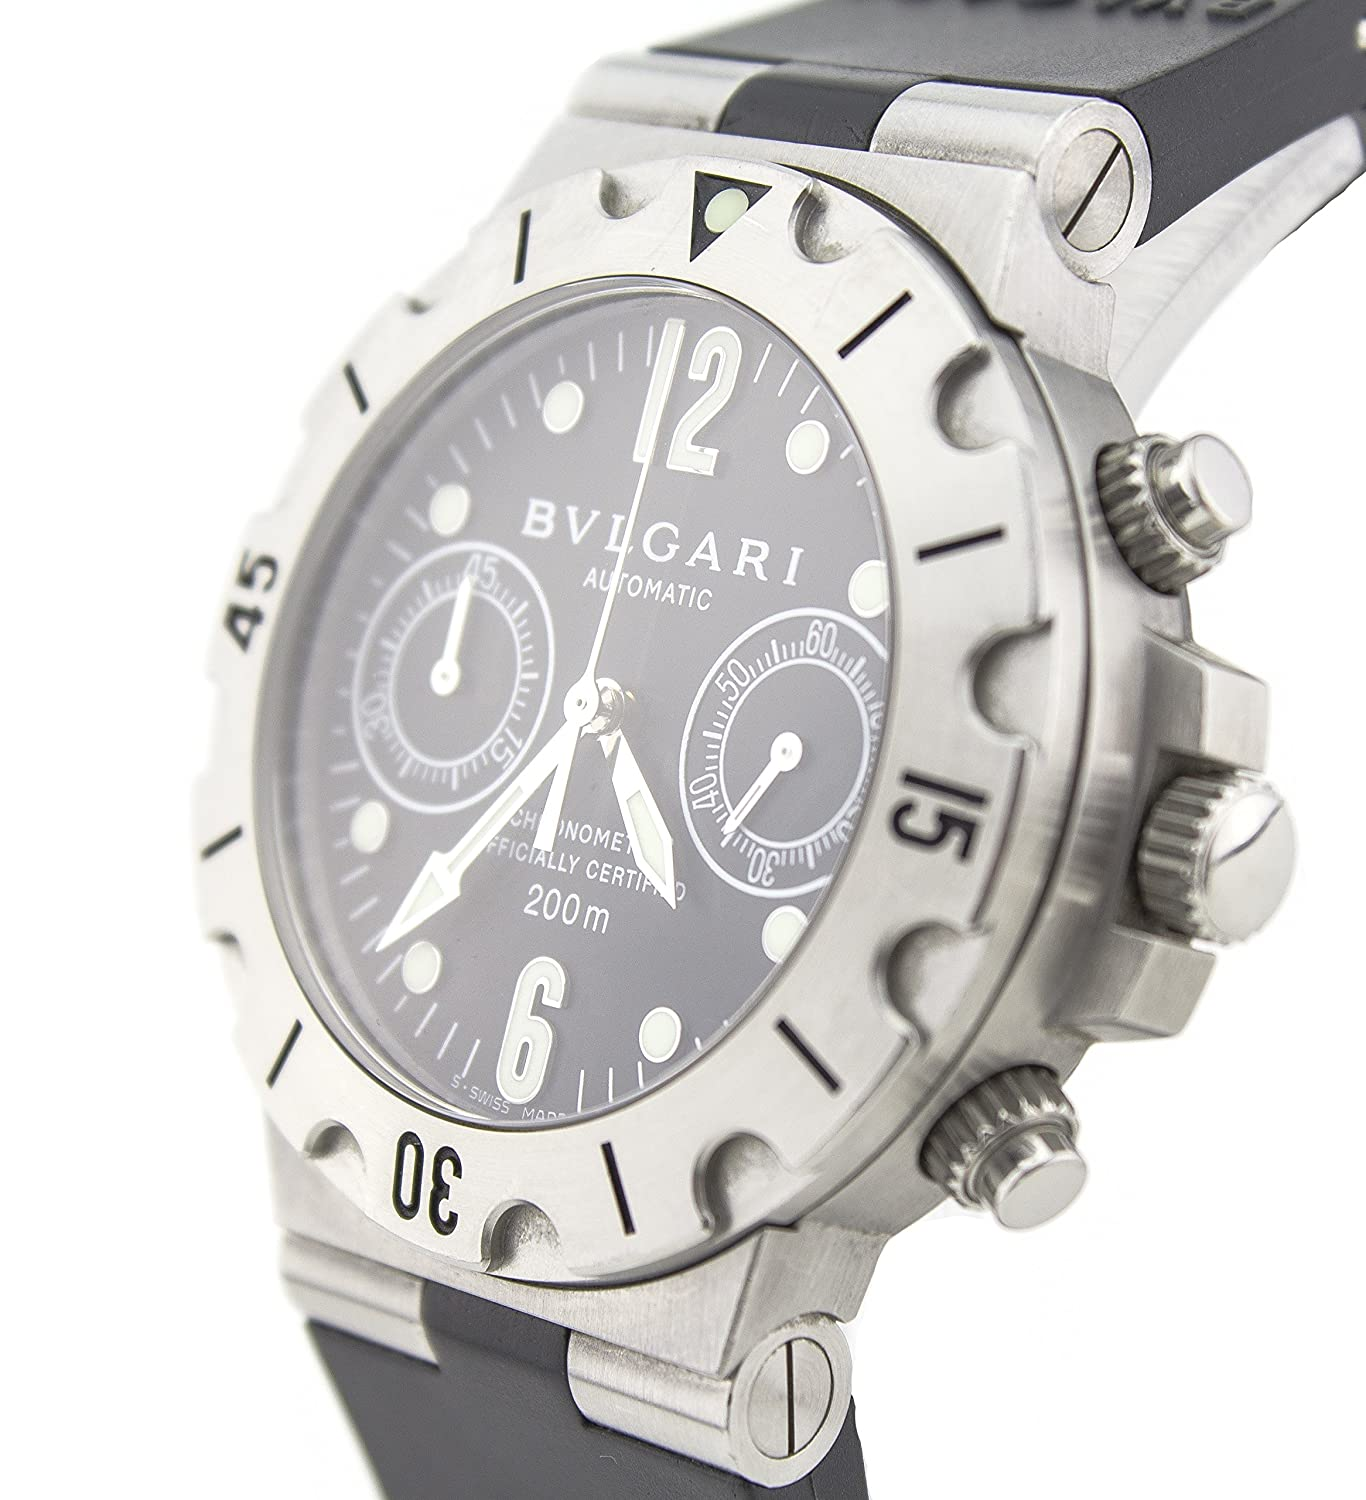 3e95293a7de Bvlgari diagono stainless steel automatic mens watch certified pre owned  bvlgari watches jpg 1366x1500 Iron man